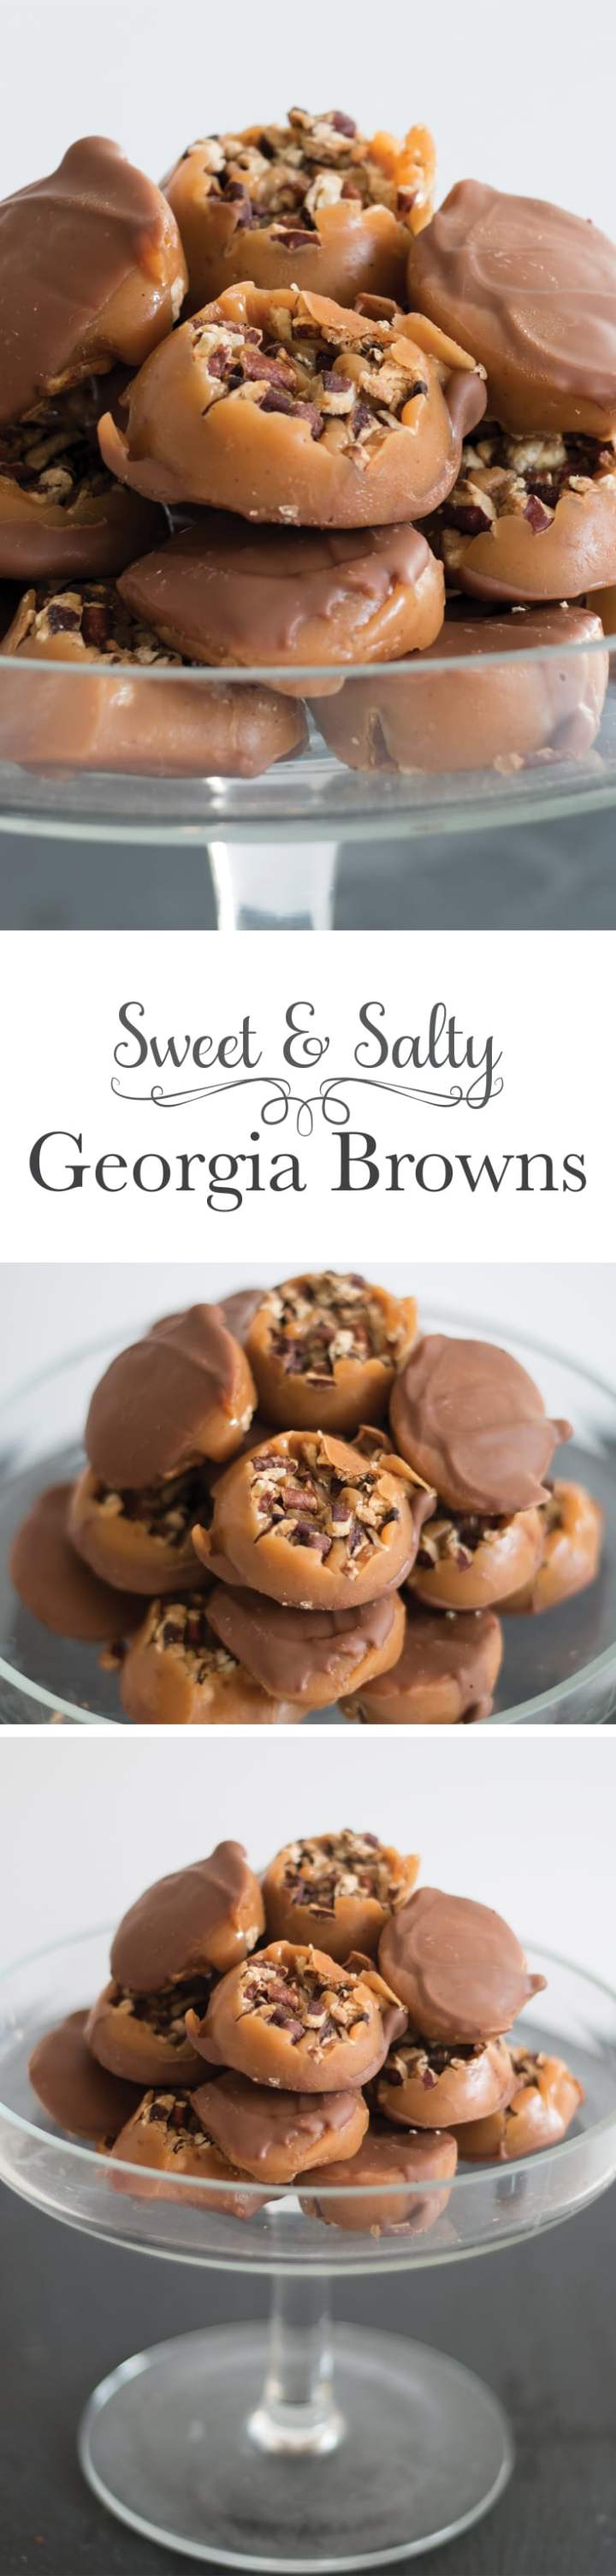 A chewy salted caramel is poured over roasted pecans then topped with a thin layer of rich chocolate. These are what you make when you love someone.